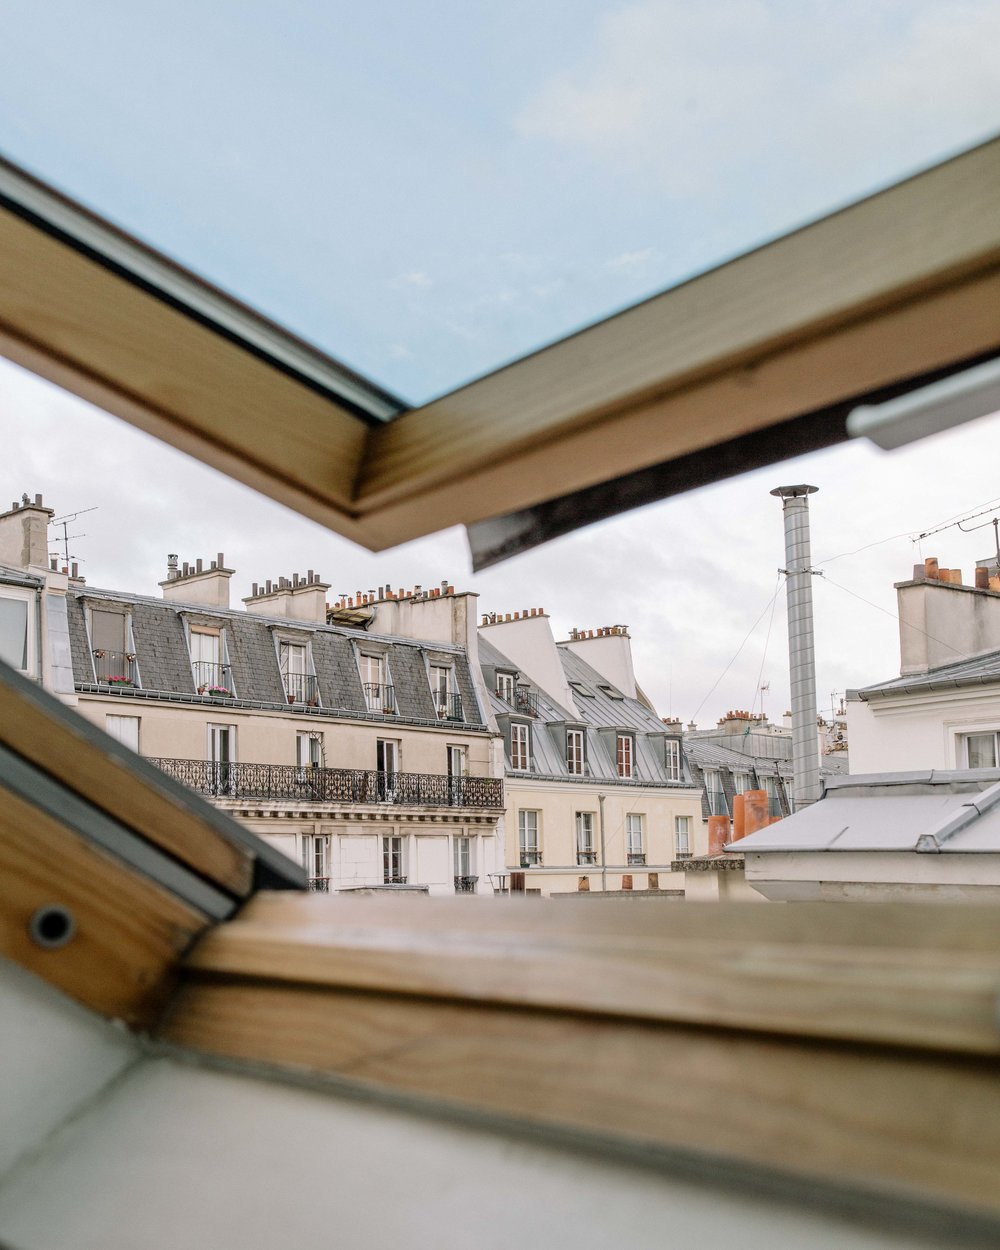 The quintessential Paris view from a top floor apartment.